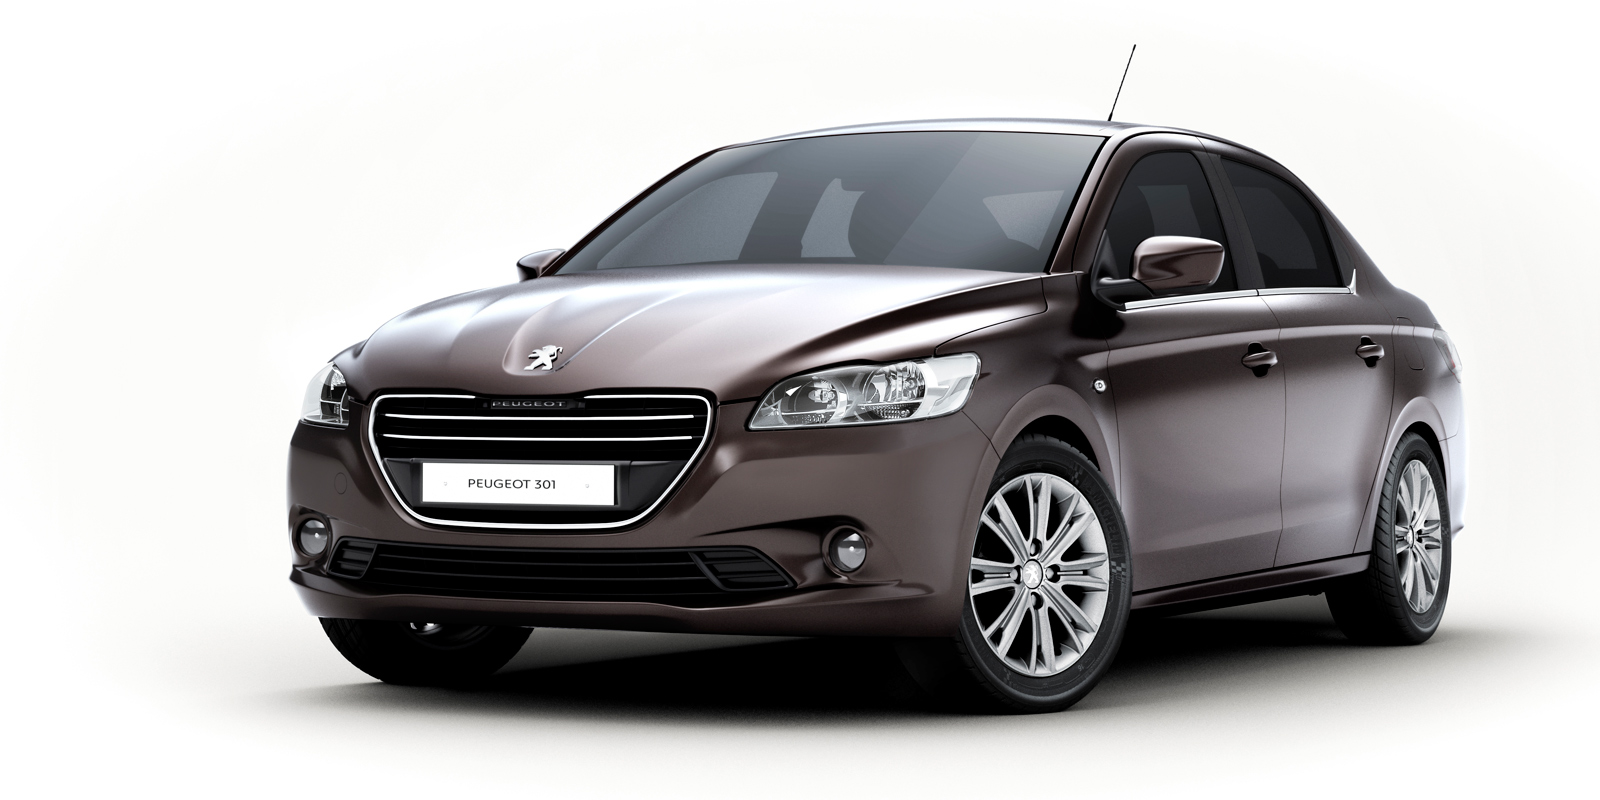 PSAs Brand Strategy Lets Make A Peugeot Sandwich Photo Gallery Wallpapers HD